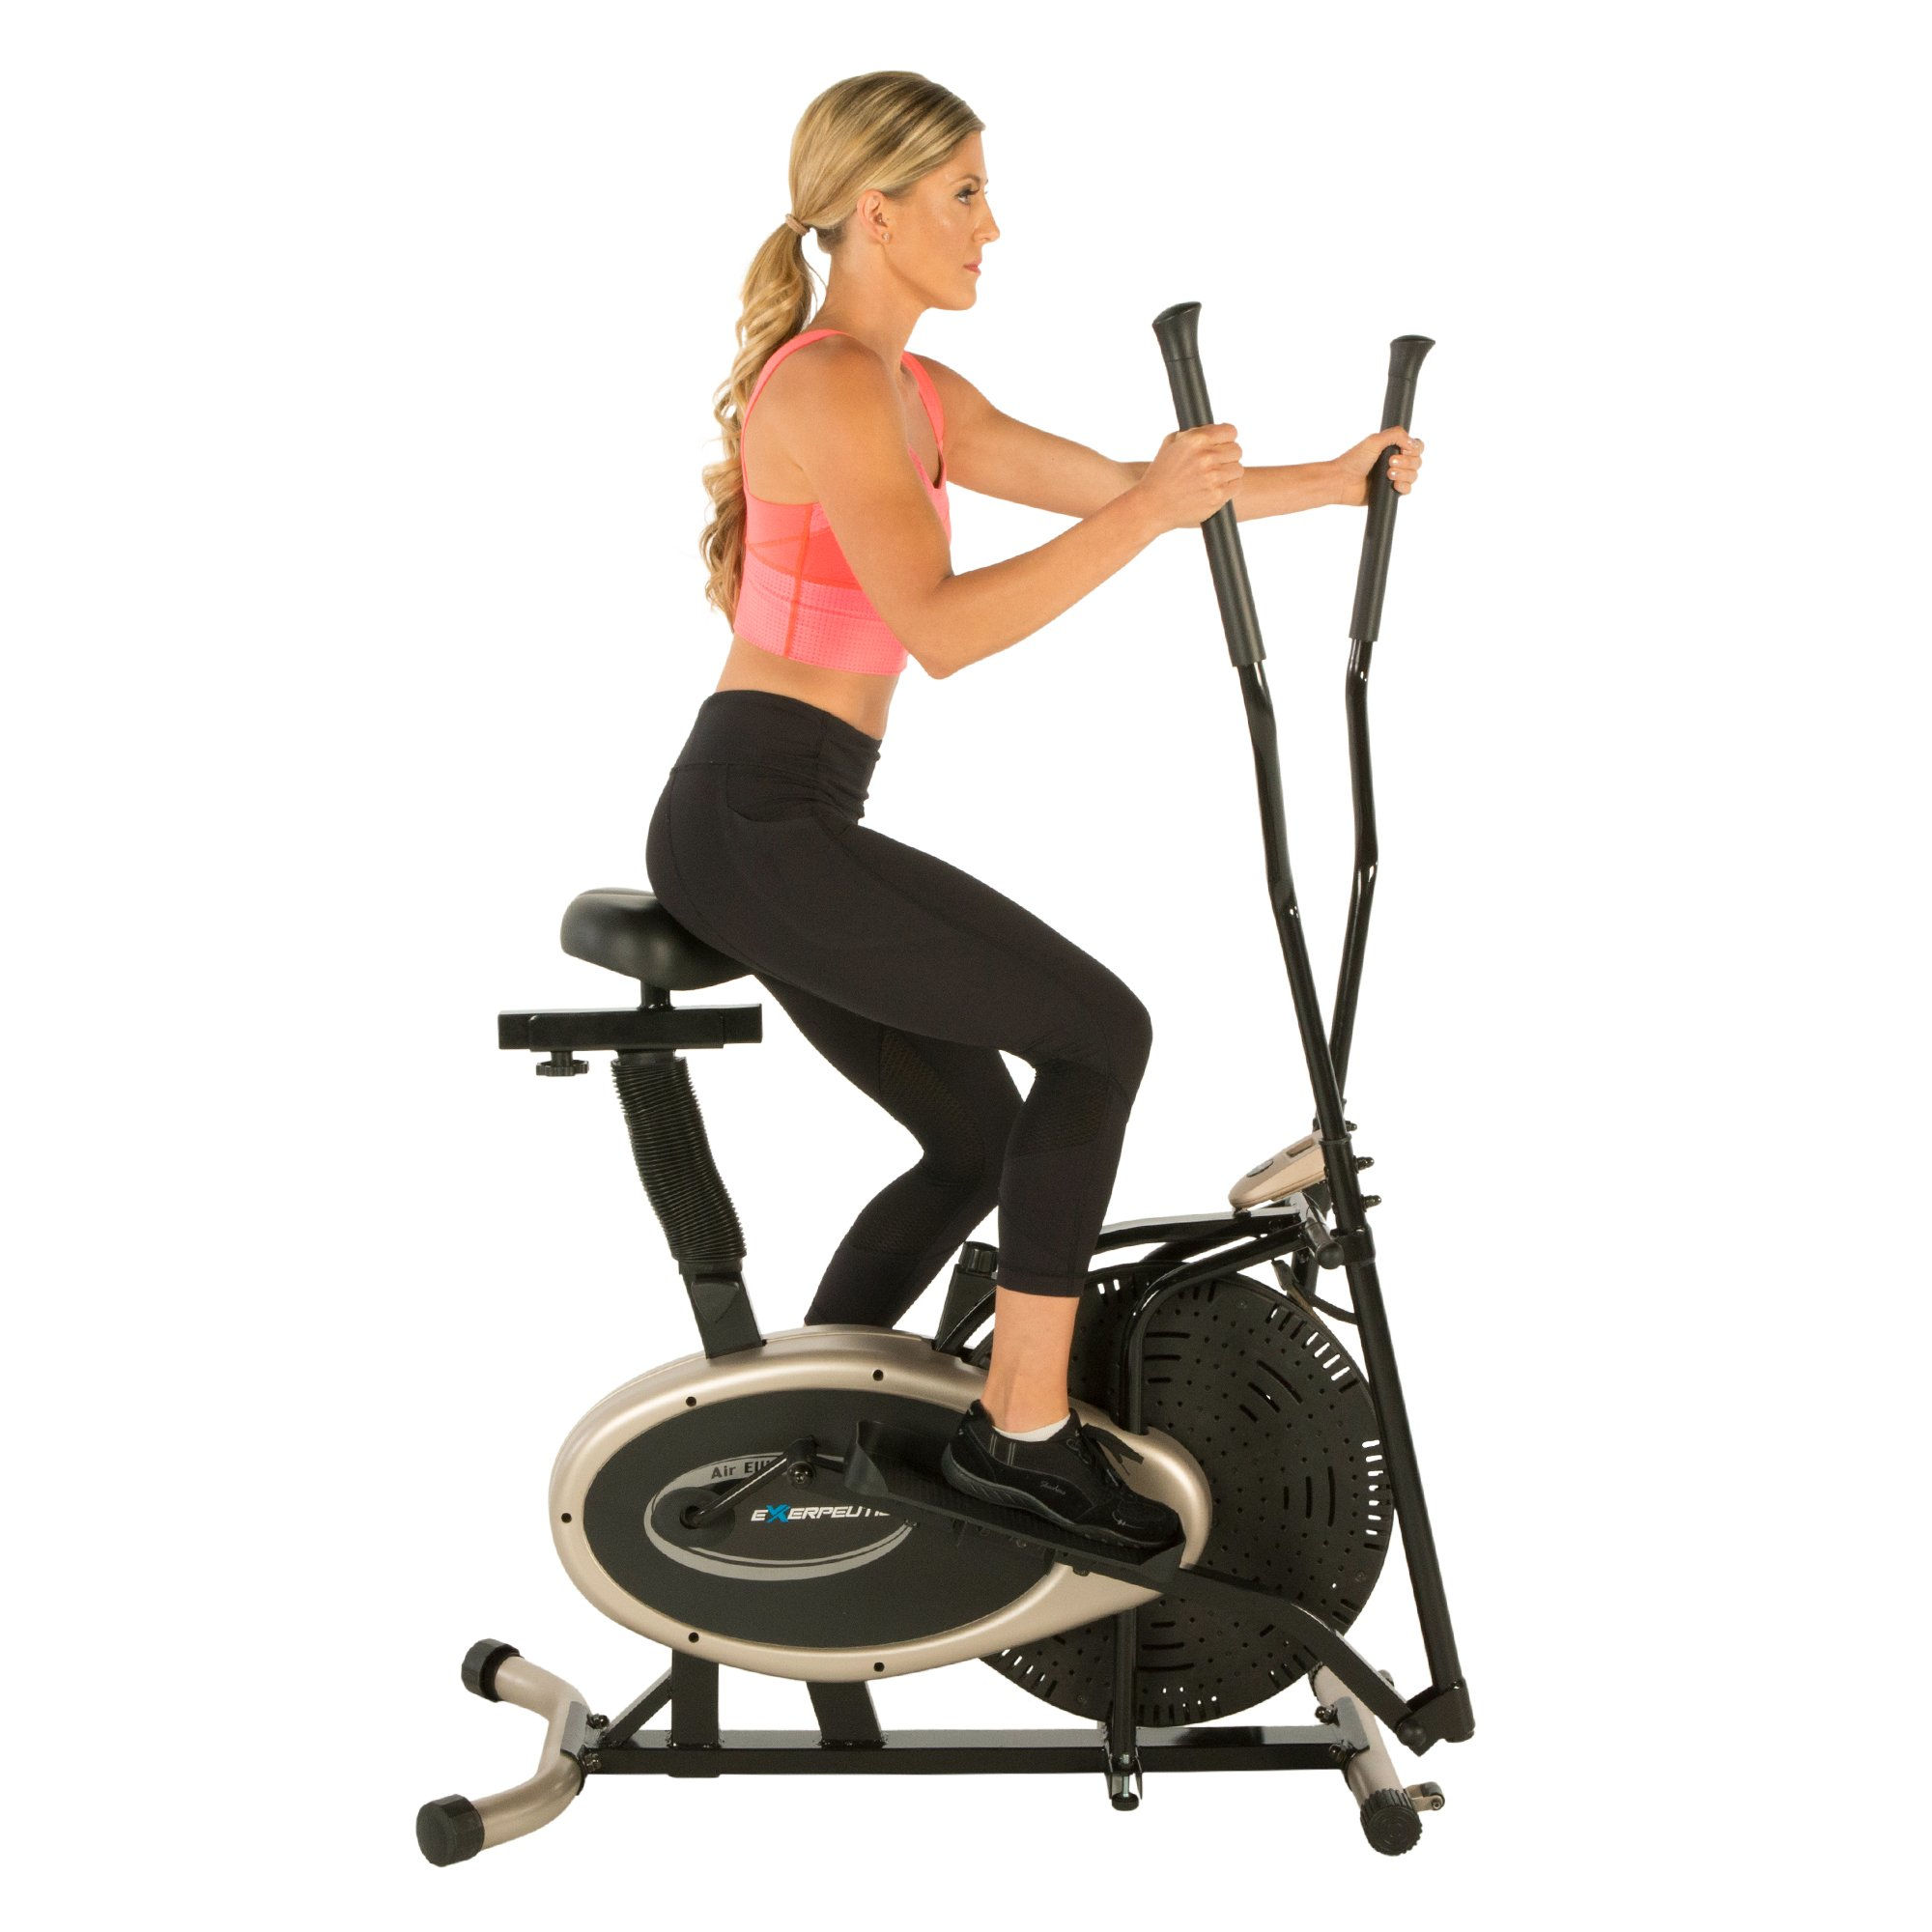 Exerpeutic Gold Elliptical and Exercise Bike Dual Trainer by Exerpeutic (Image #4)